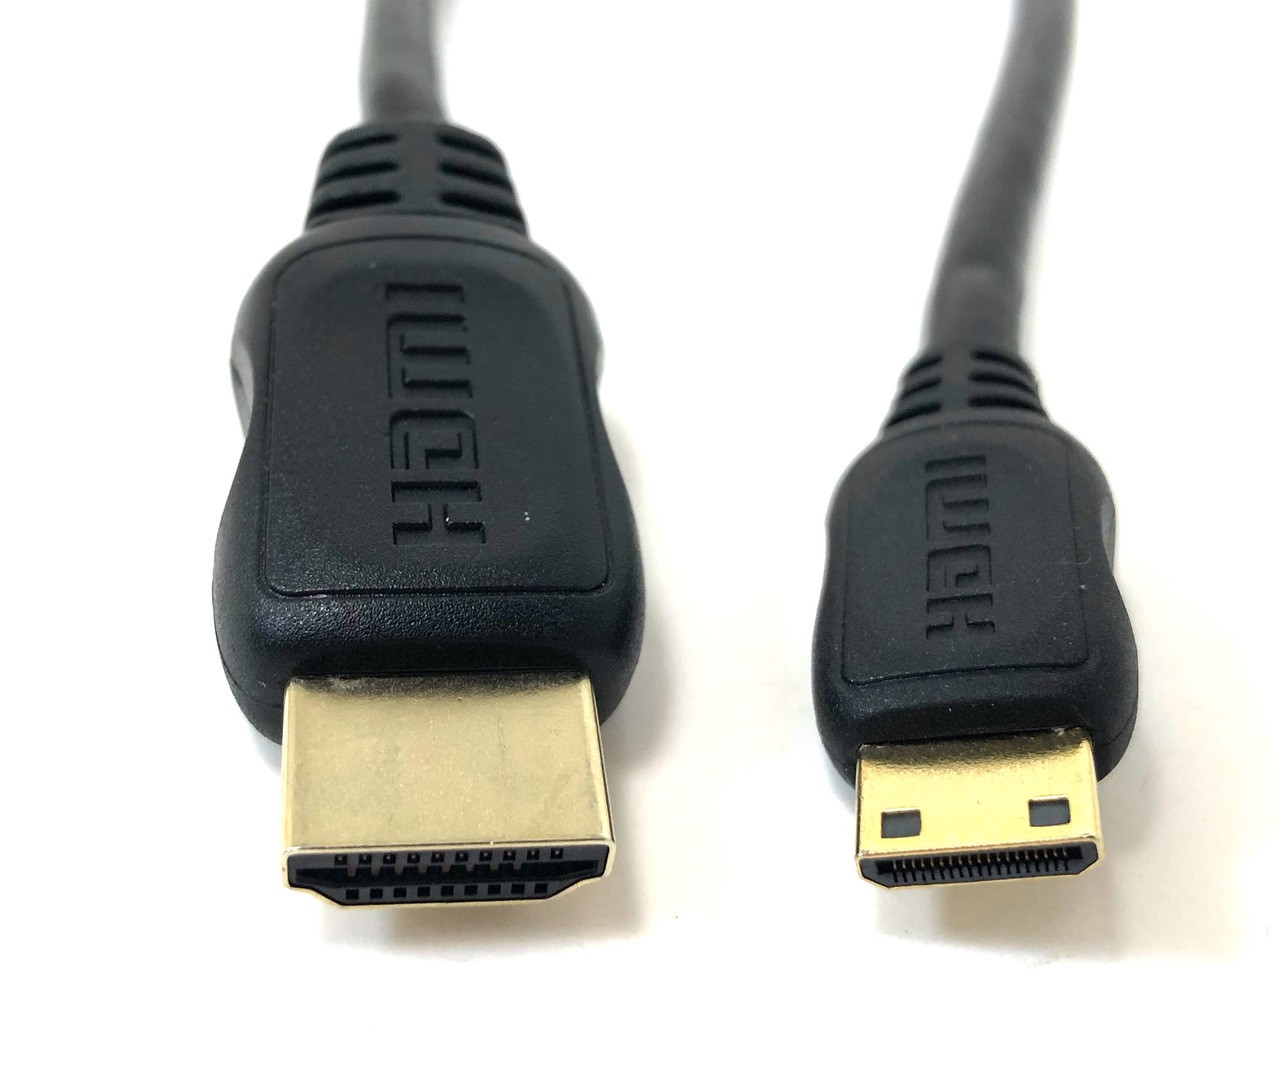 Mini HDMI to HDMI Cable/Adapter - 6 ft